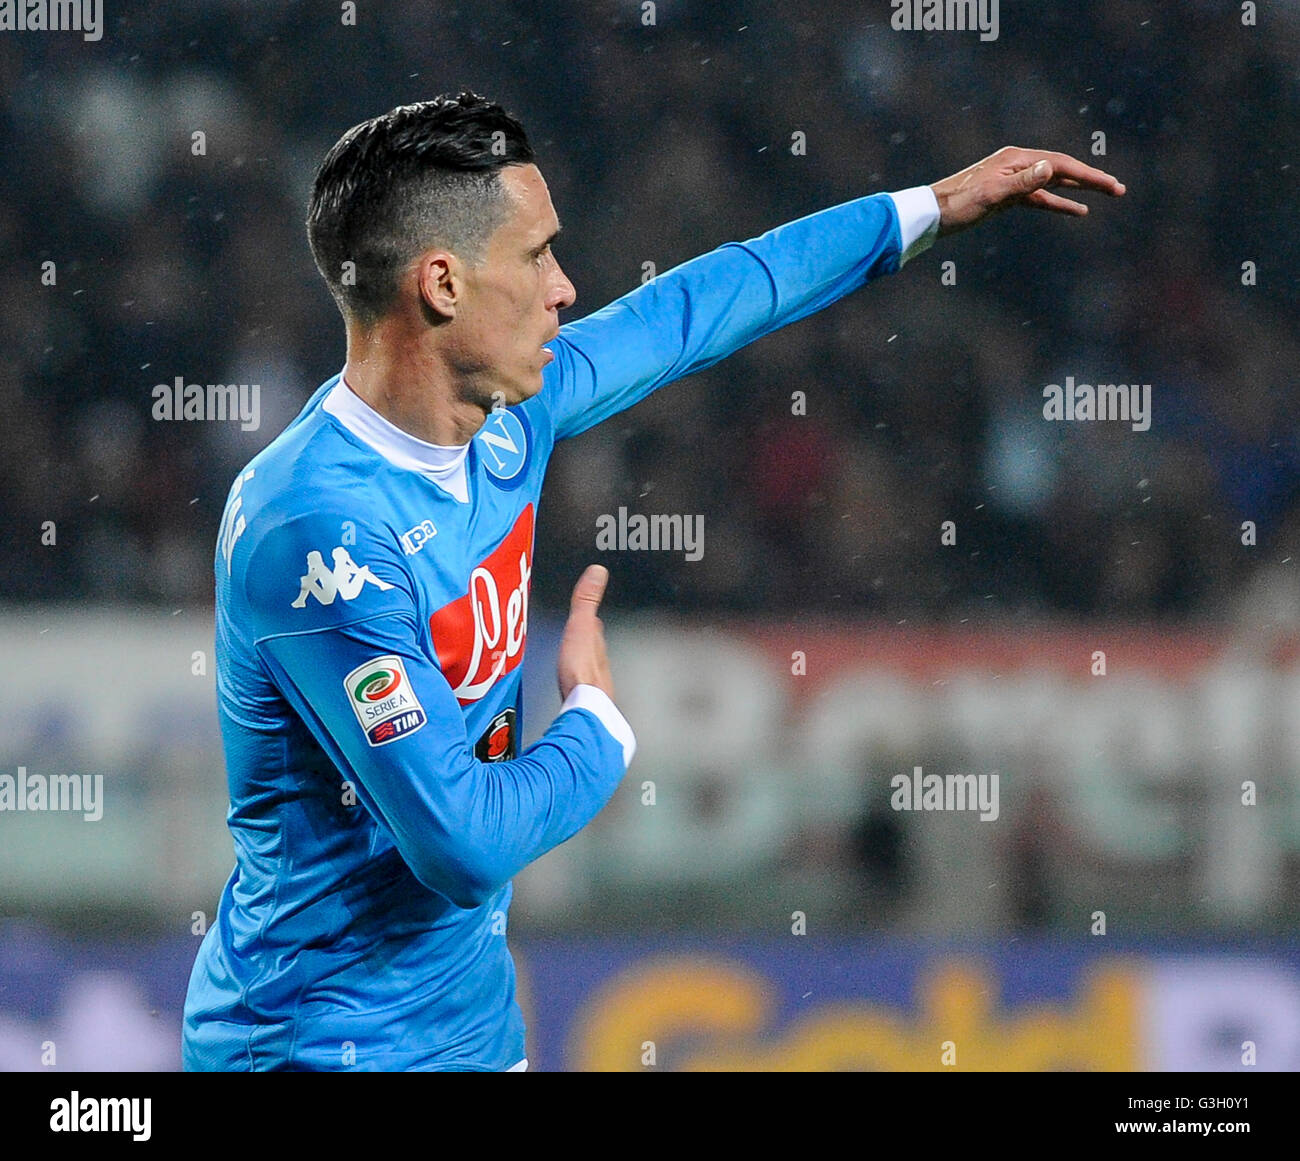 Turin Italy 08th May 2016 Jose Maria Callejon celebrates after